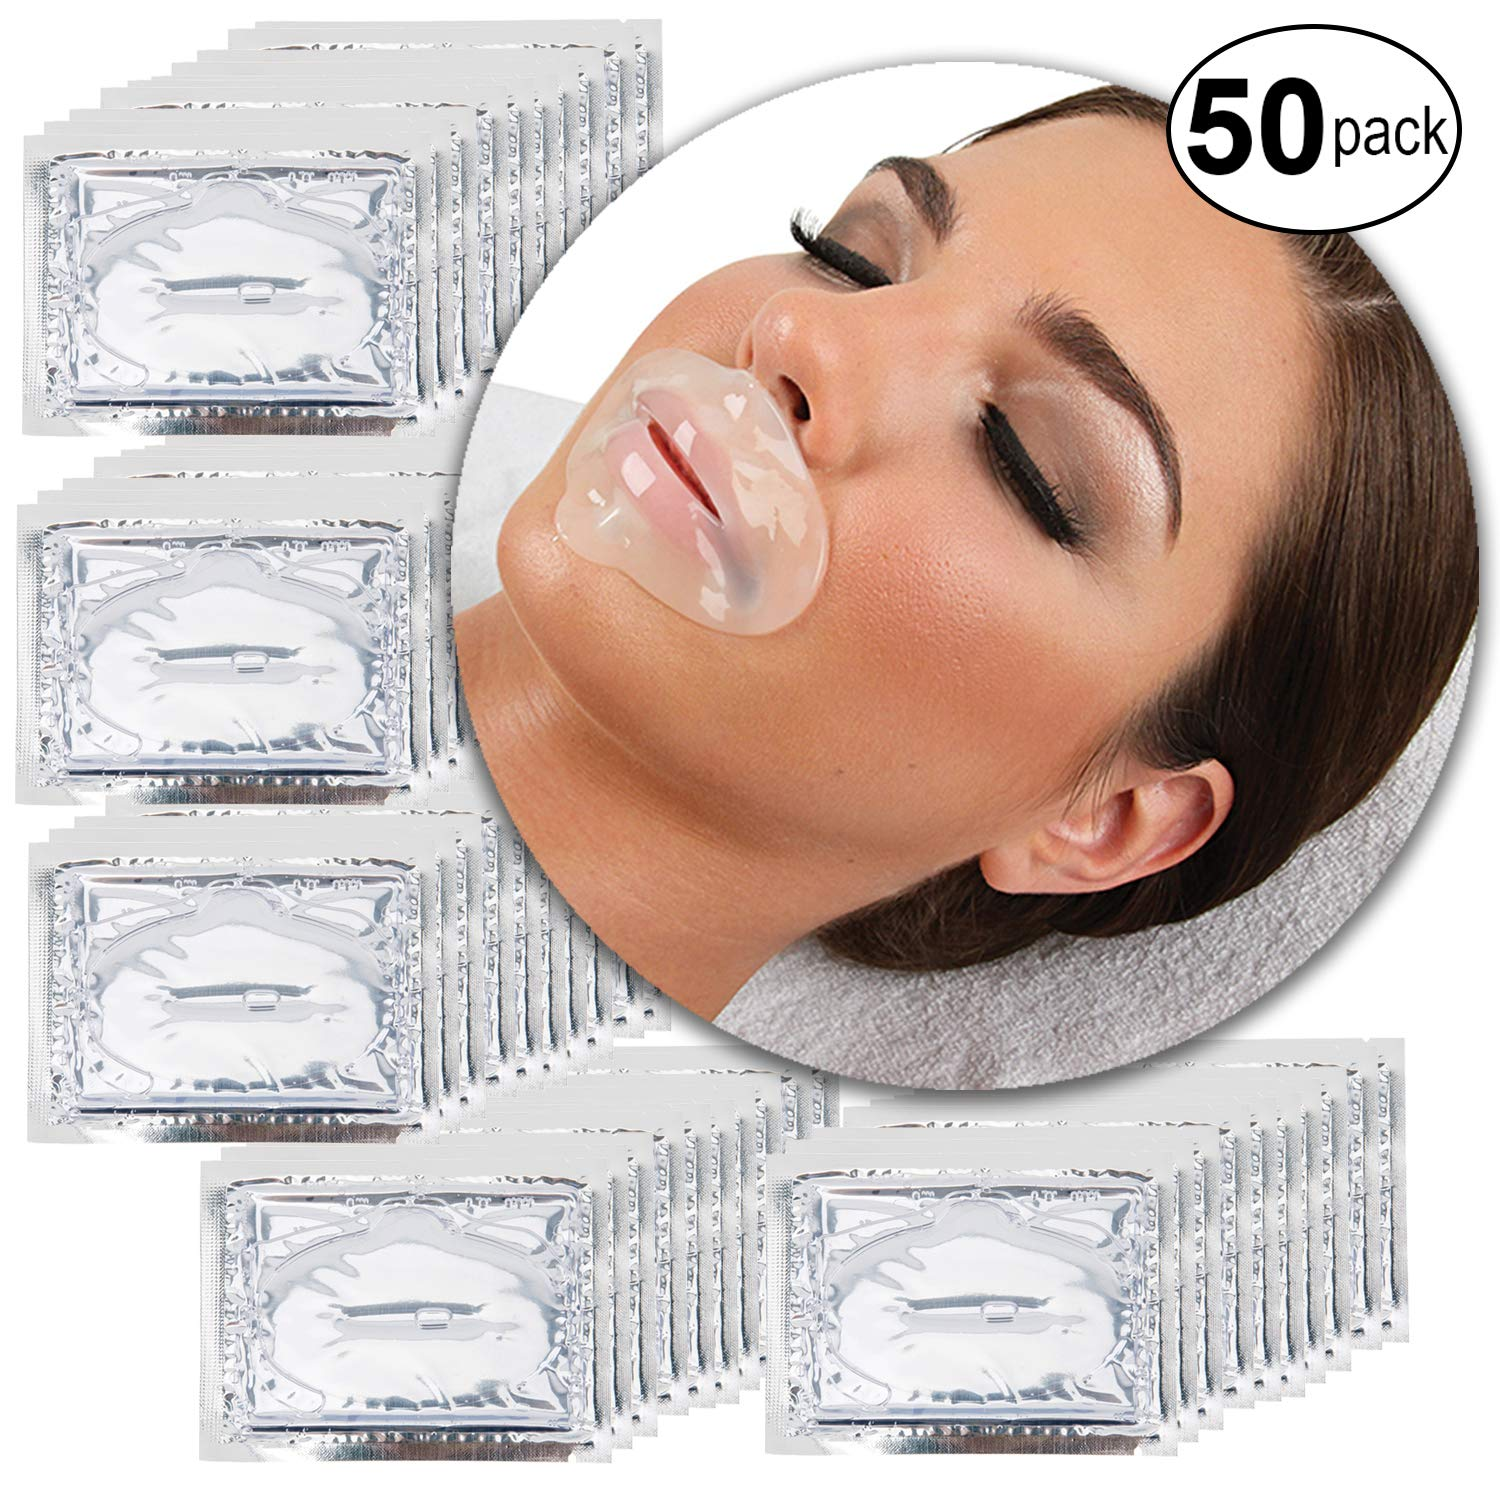 Anti Aging Treatments Set Kit of 50pcs Lips Mouth Clear Transparent Collagen Gel Crystal Masks Patches Sheets for Fine Lines and Wrinkles Removal, Moisturizing Hydration, Skin Firming and Nourishing VAGA